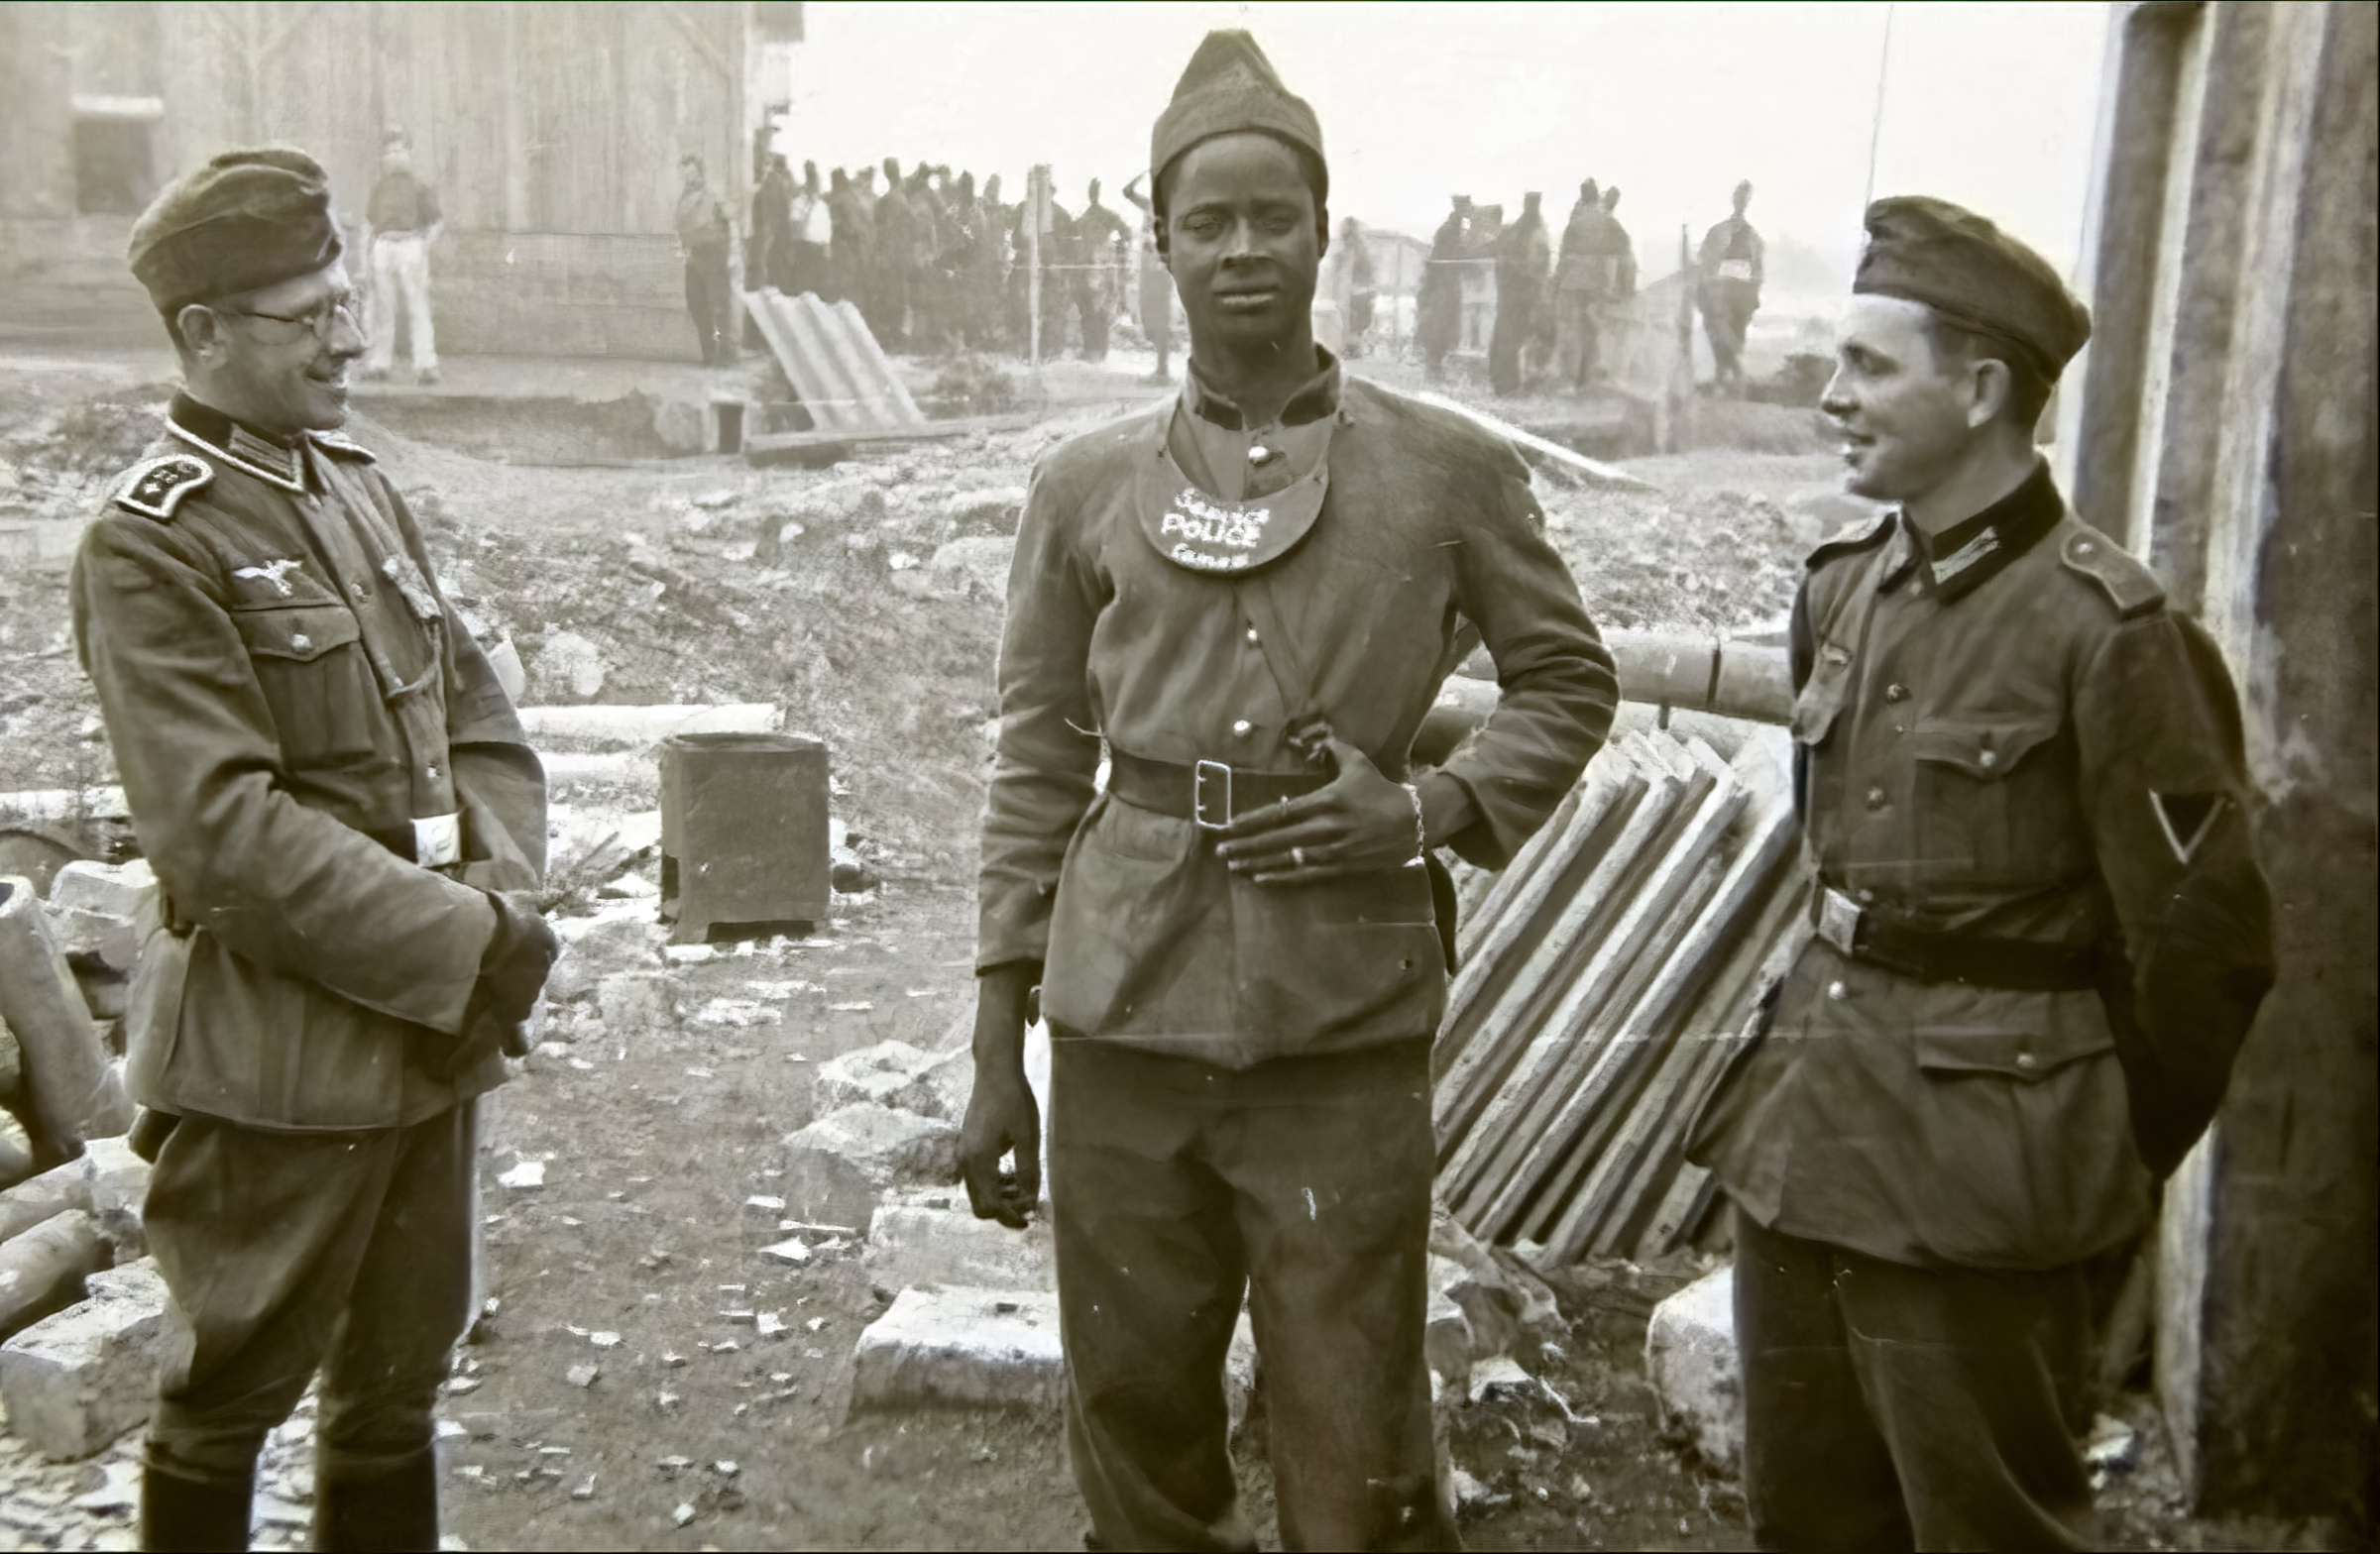 French soldier is sectioned out for a photo which carries many innuendos BOF 1940 ebay 01